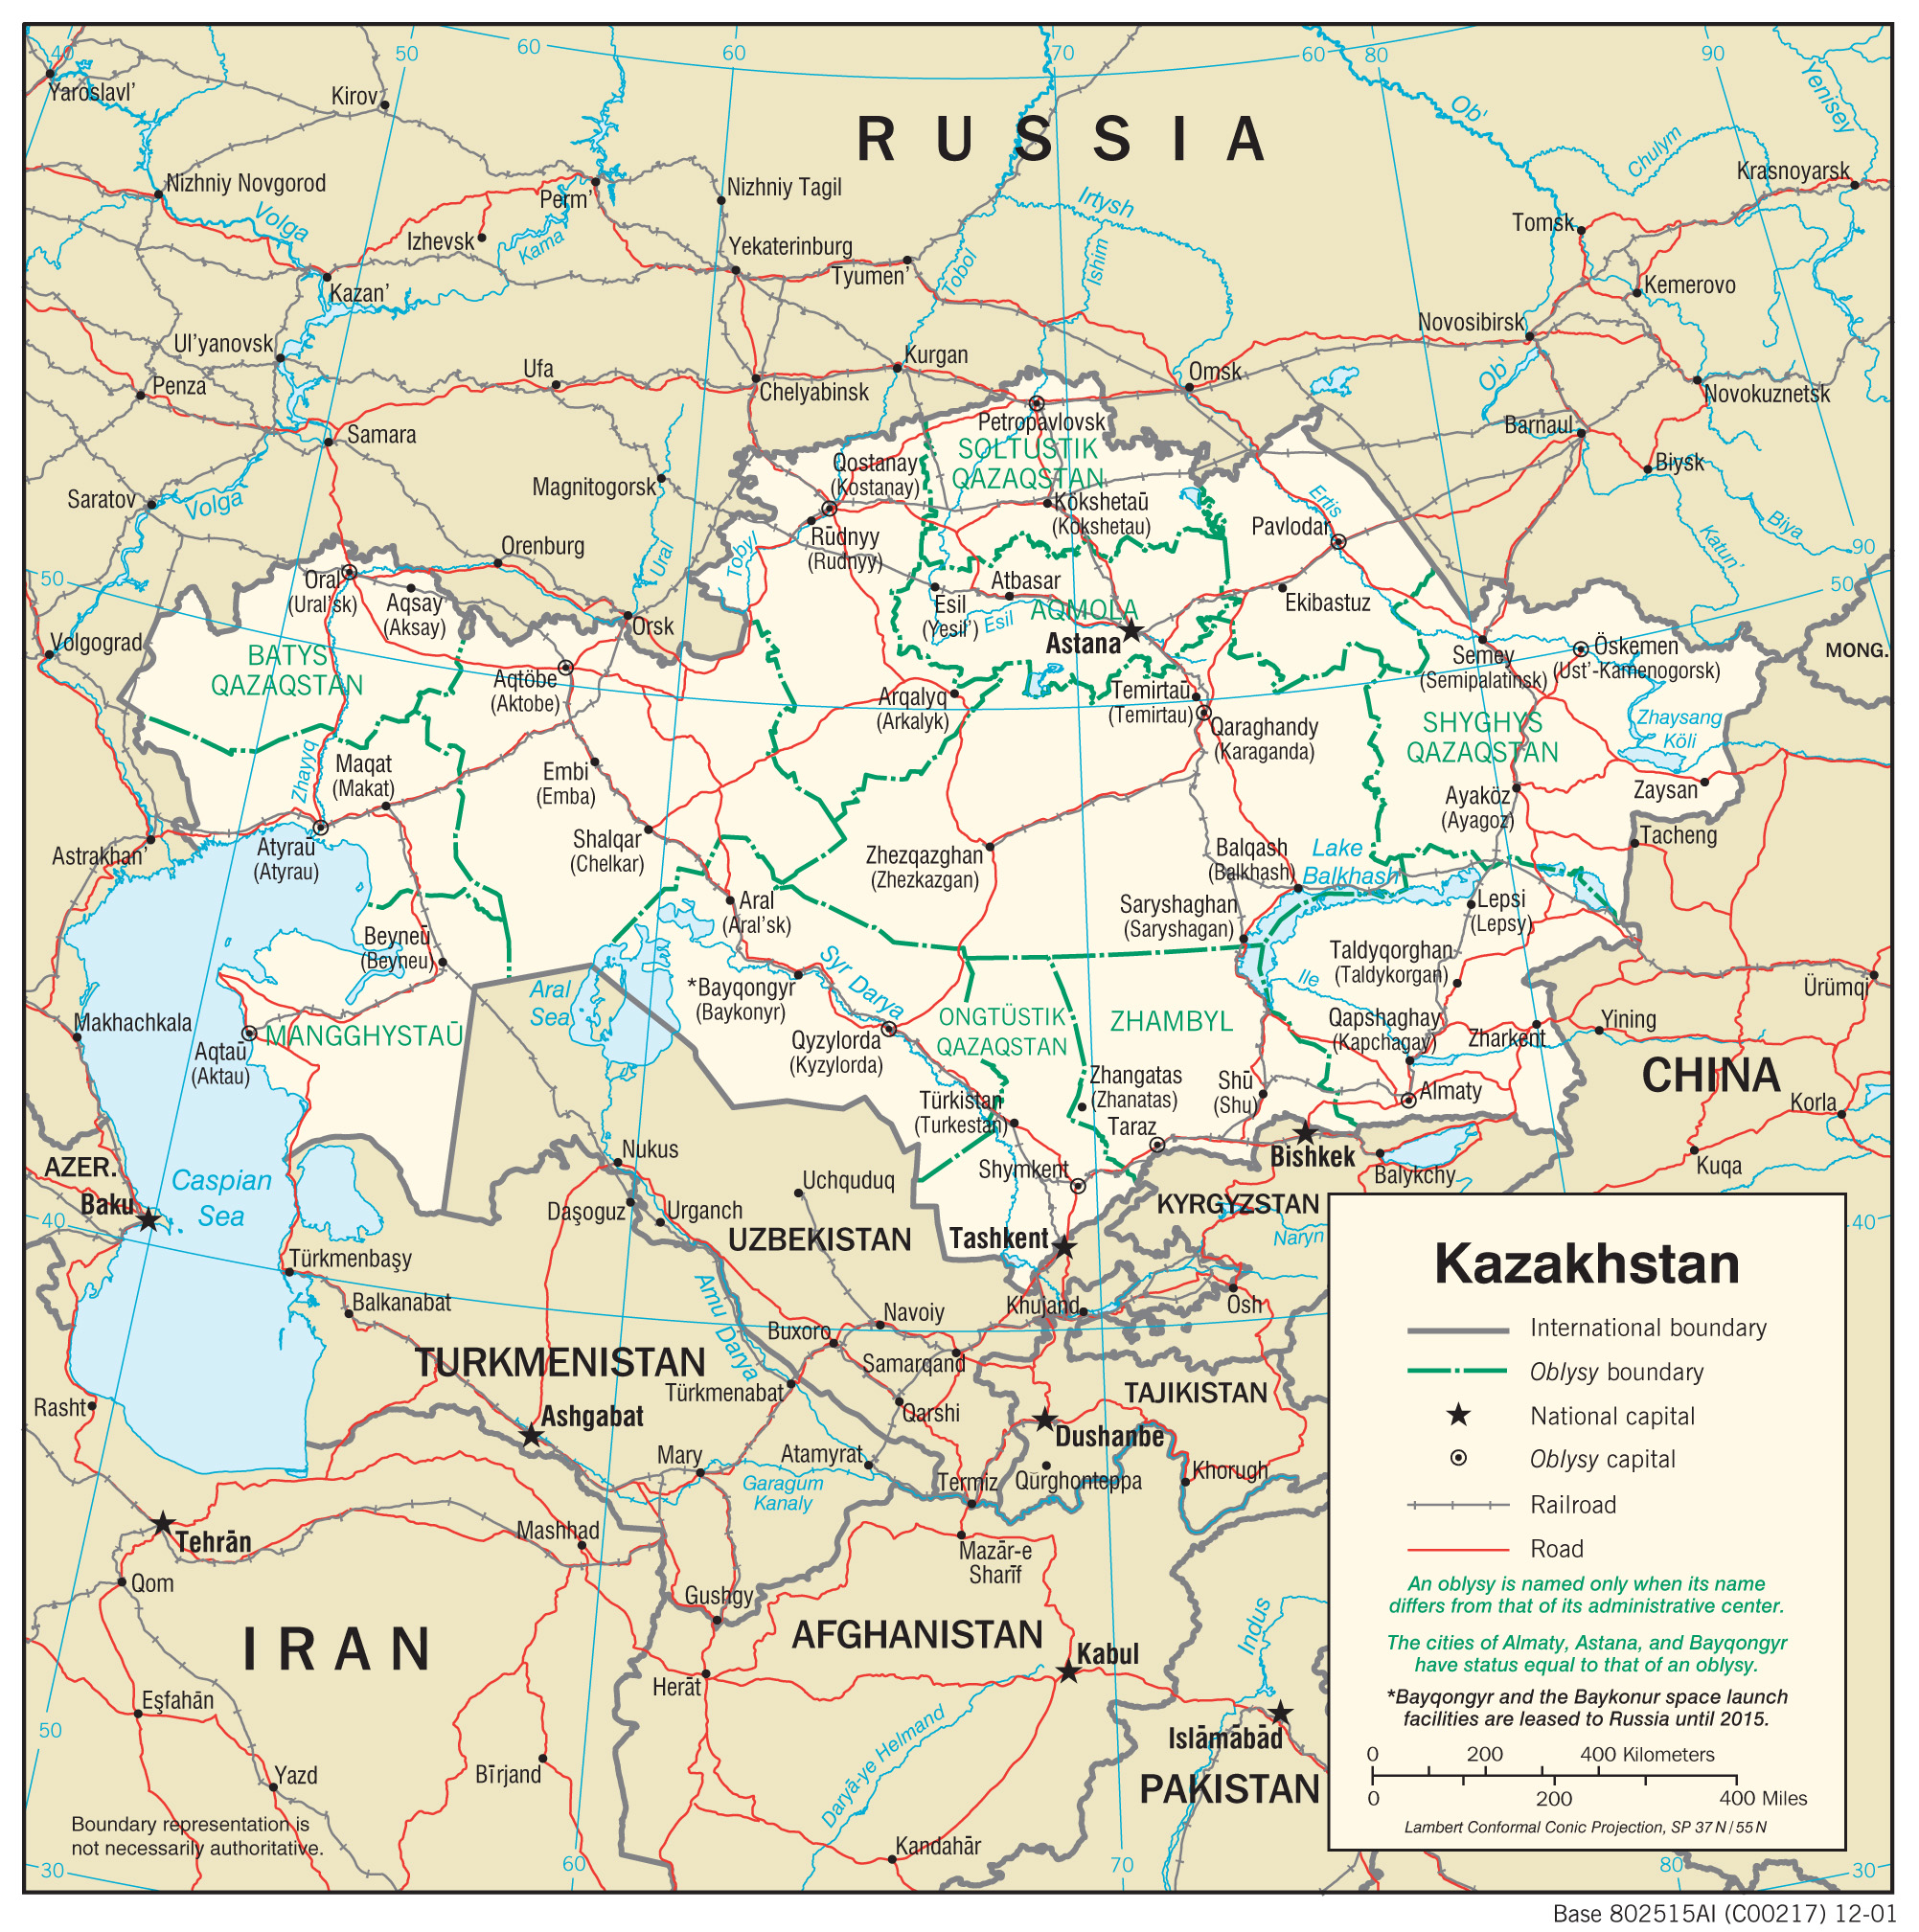 Map Of Kazakhstan Kazakhstan Maps   Perry Castañeda Map Collection   UT Library Online